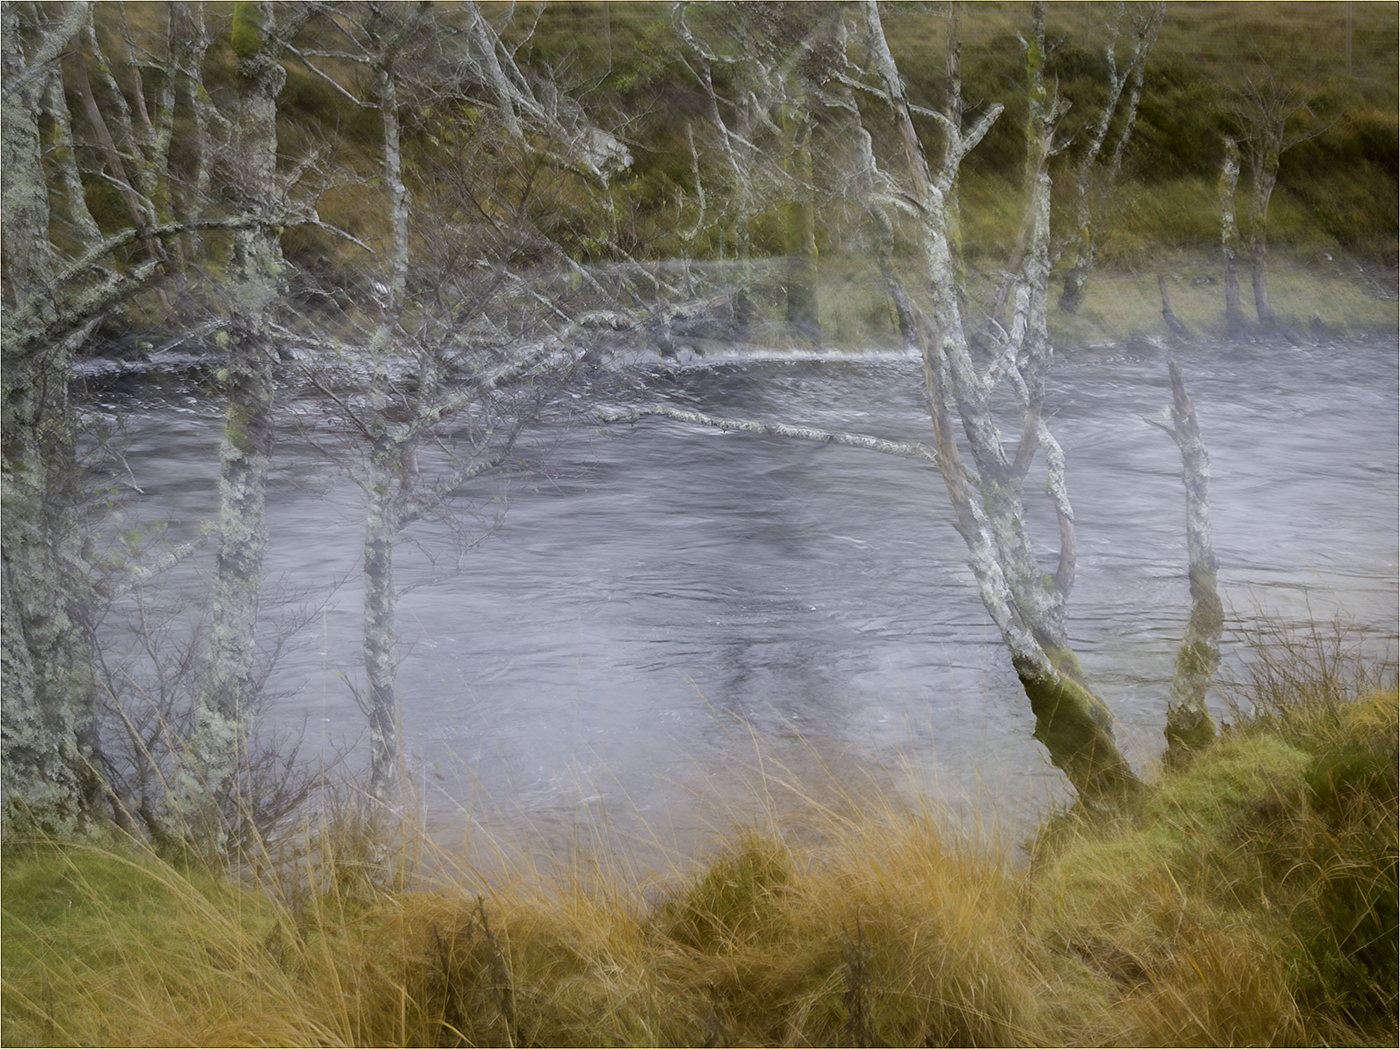 Banks of the River Etive.